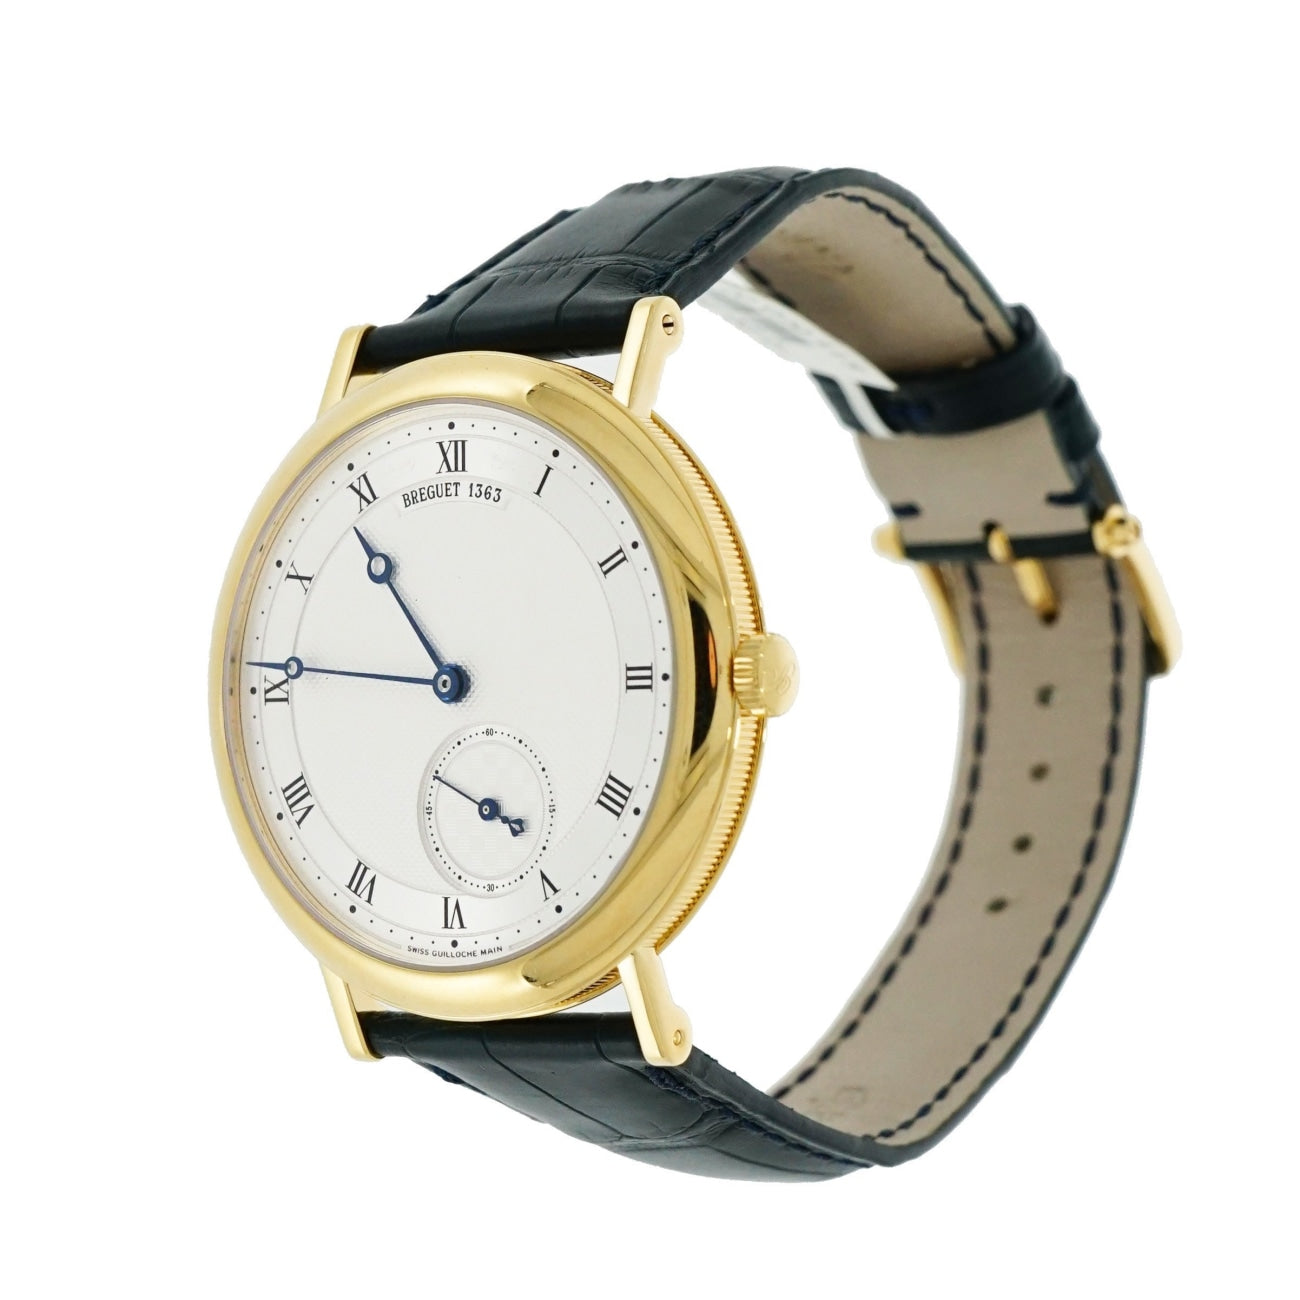 Pre-Owned Breguet Watches - Classic 18 Karat Yellow Gold | Manfredi Jewels